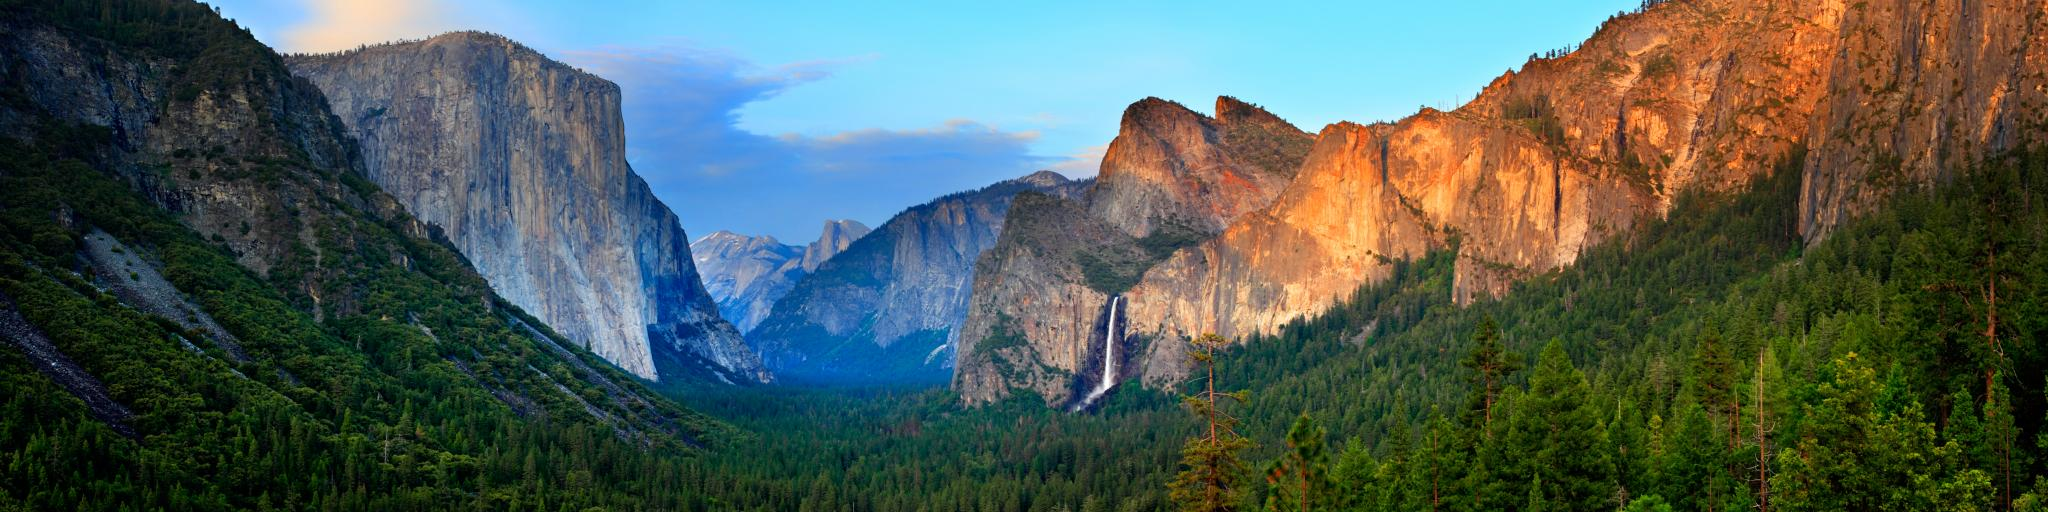 Evening view of the Yosemite Valley at Sunset from Tunnel View, California National Park